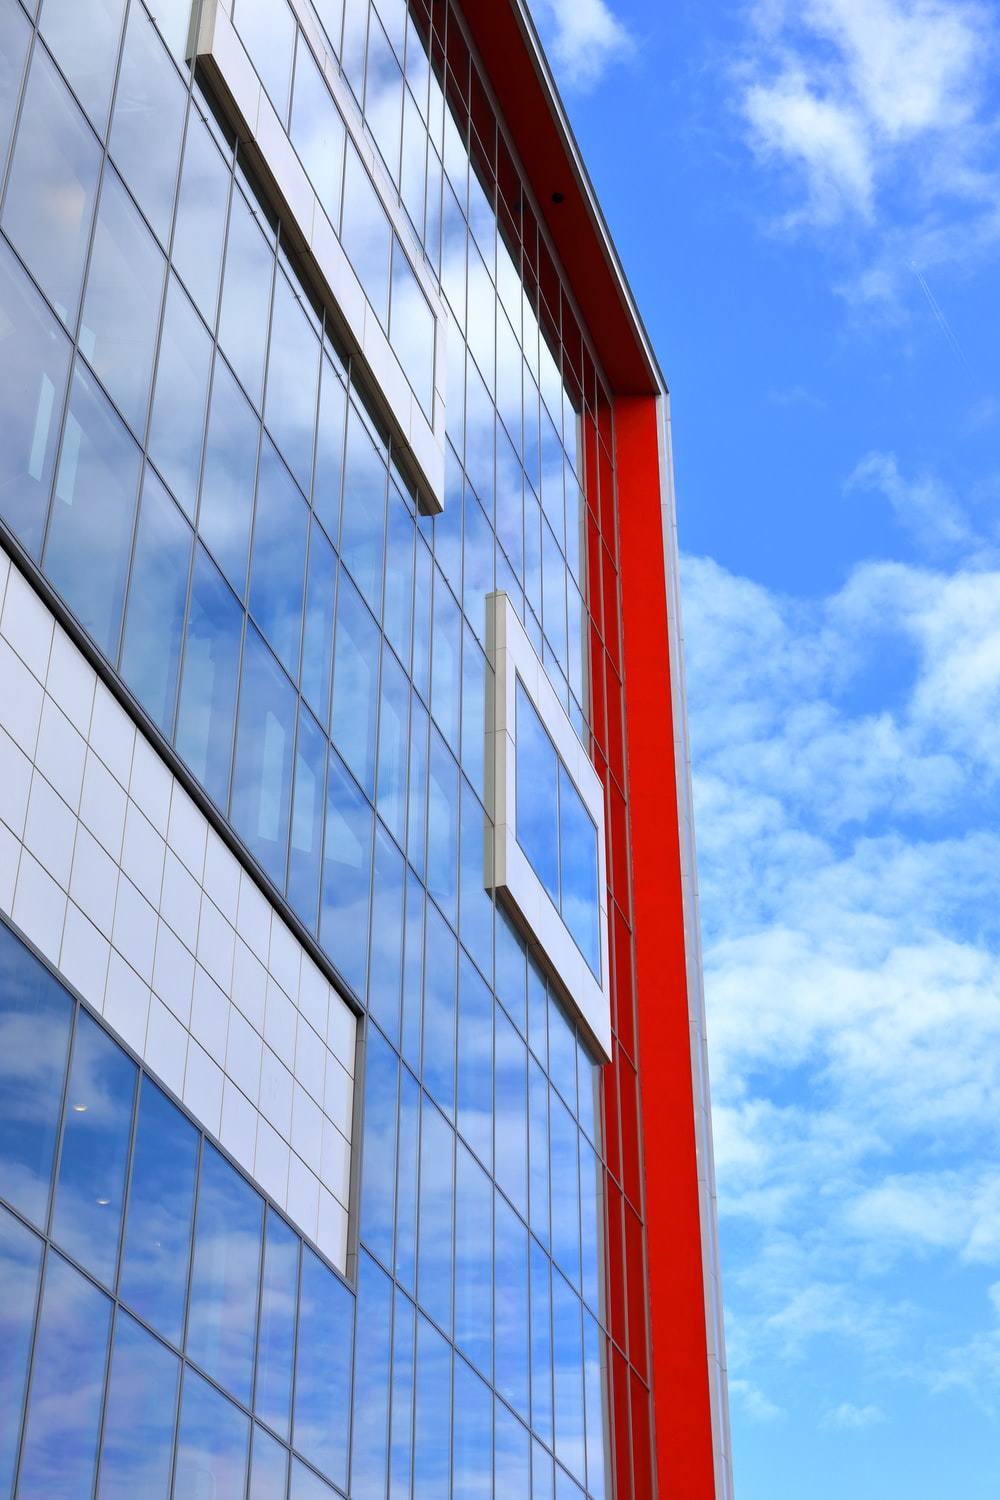 red and white building under blue sky during daytime